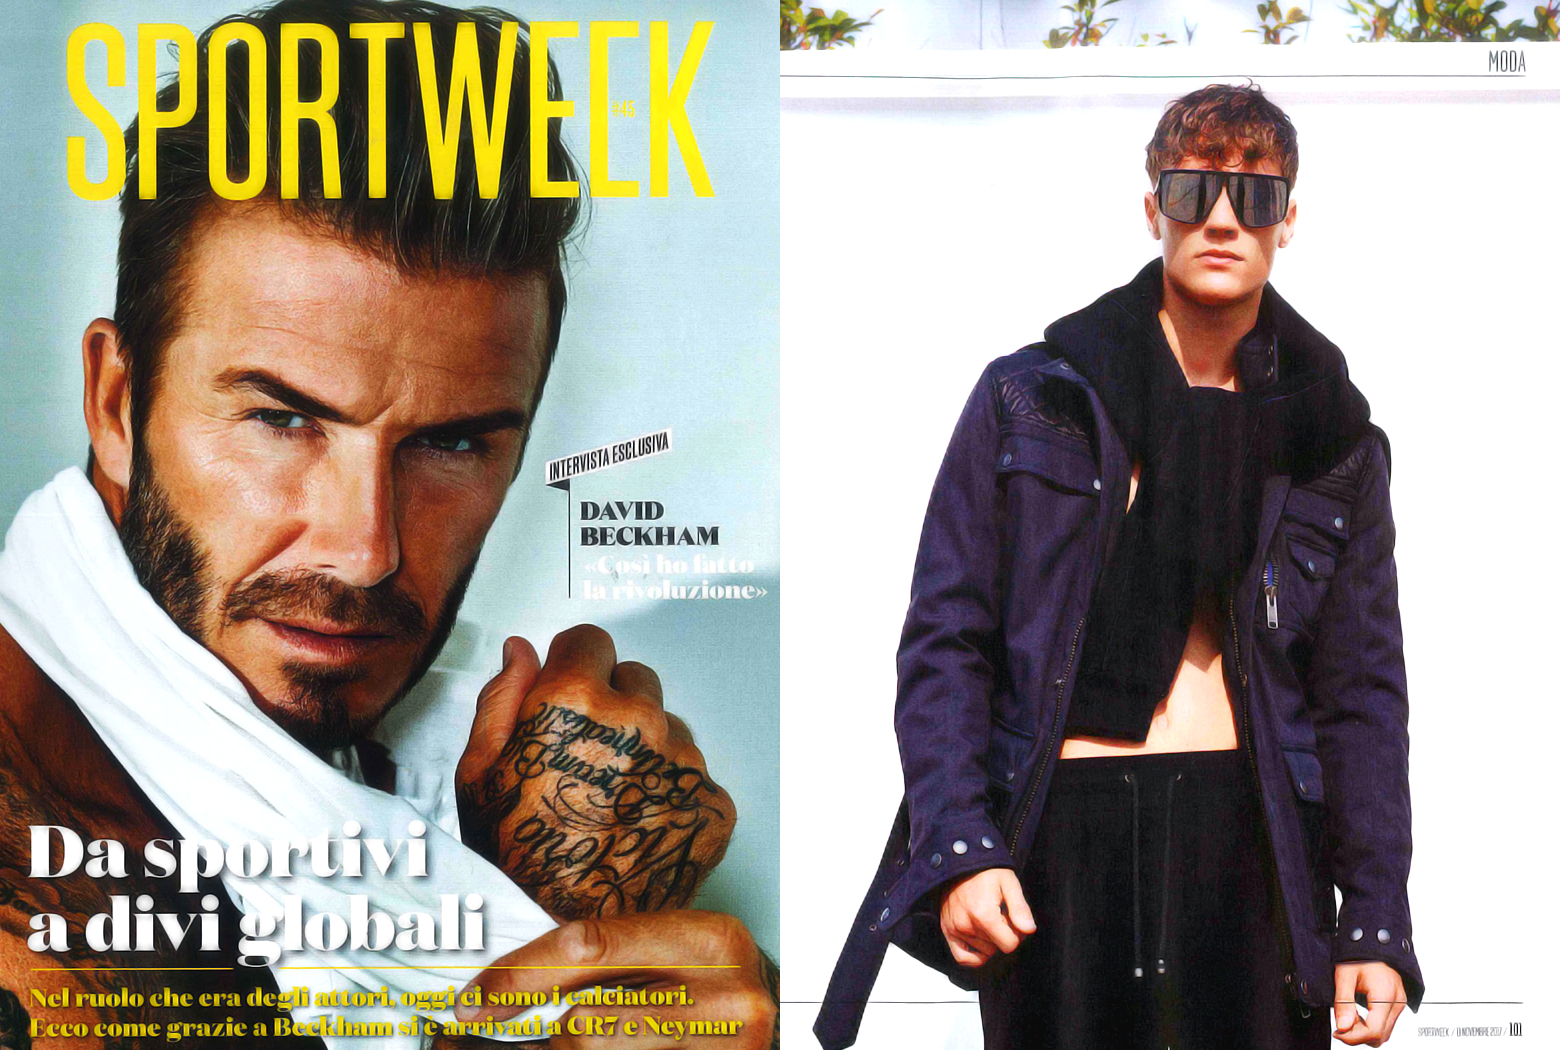 MYKITA + TIM COPPENS TEQUILA sunglasses featured in Sportweek Italy